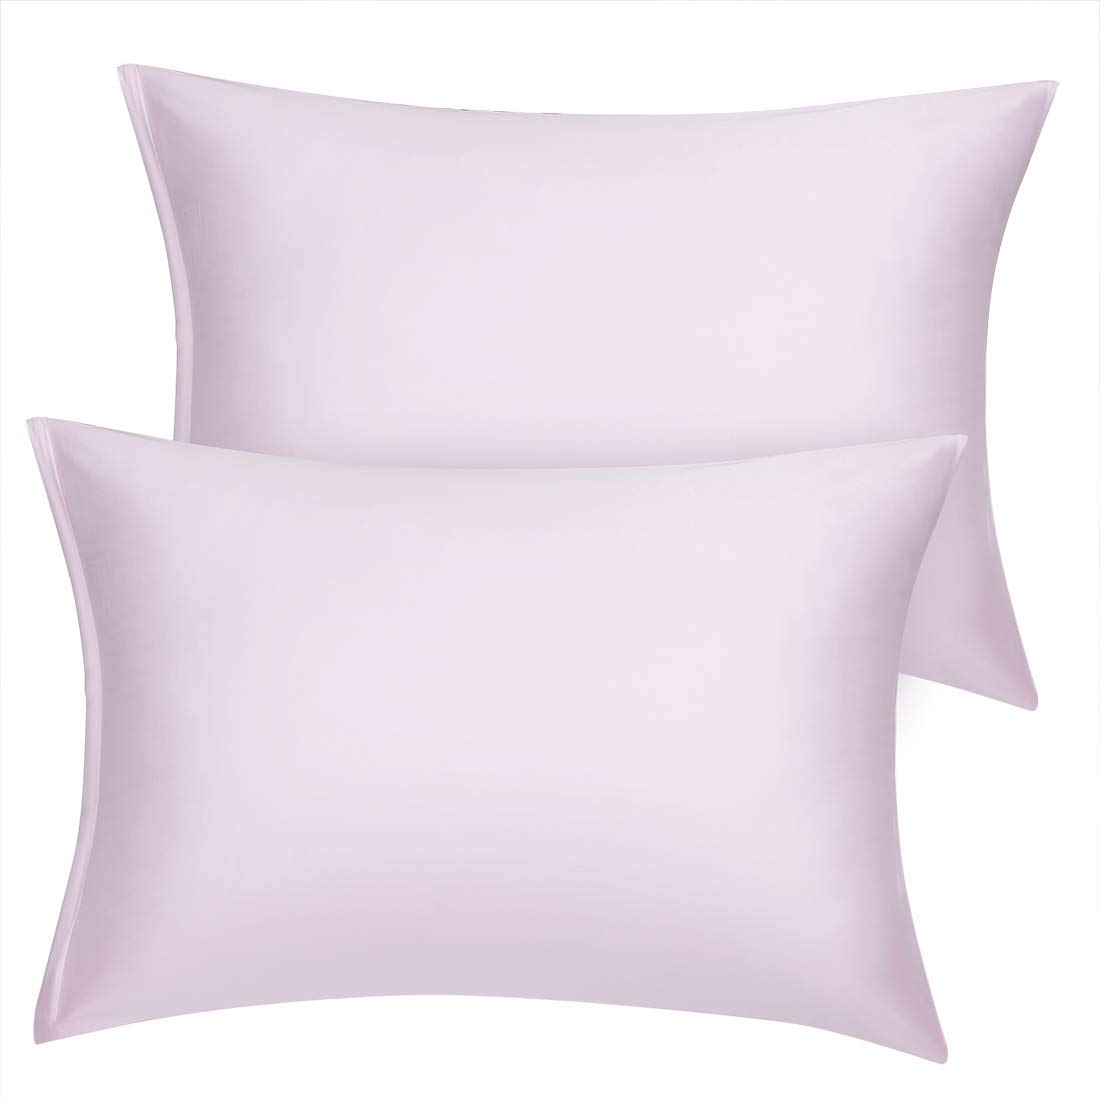 Wendana Ultra Soft Pillowcases With Envelope Closure